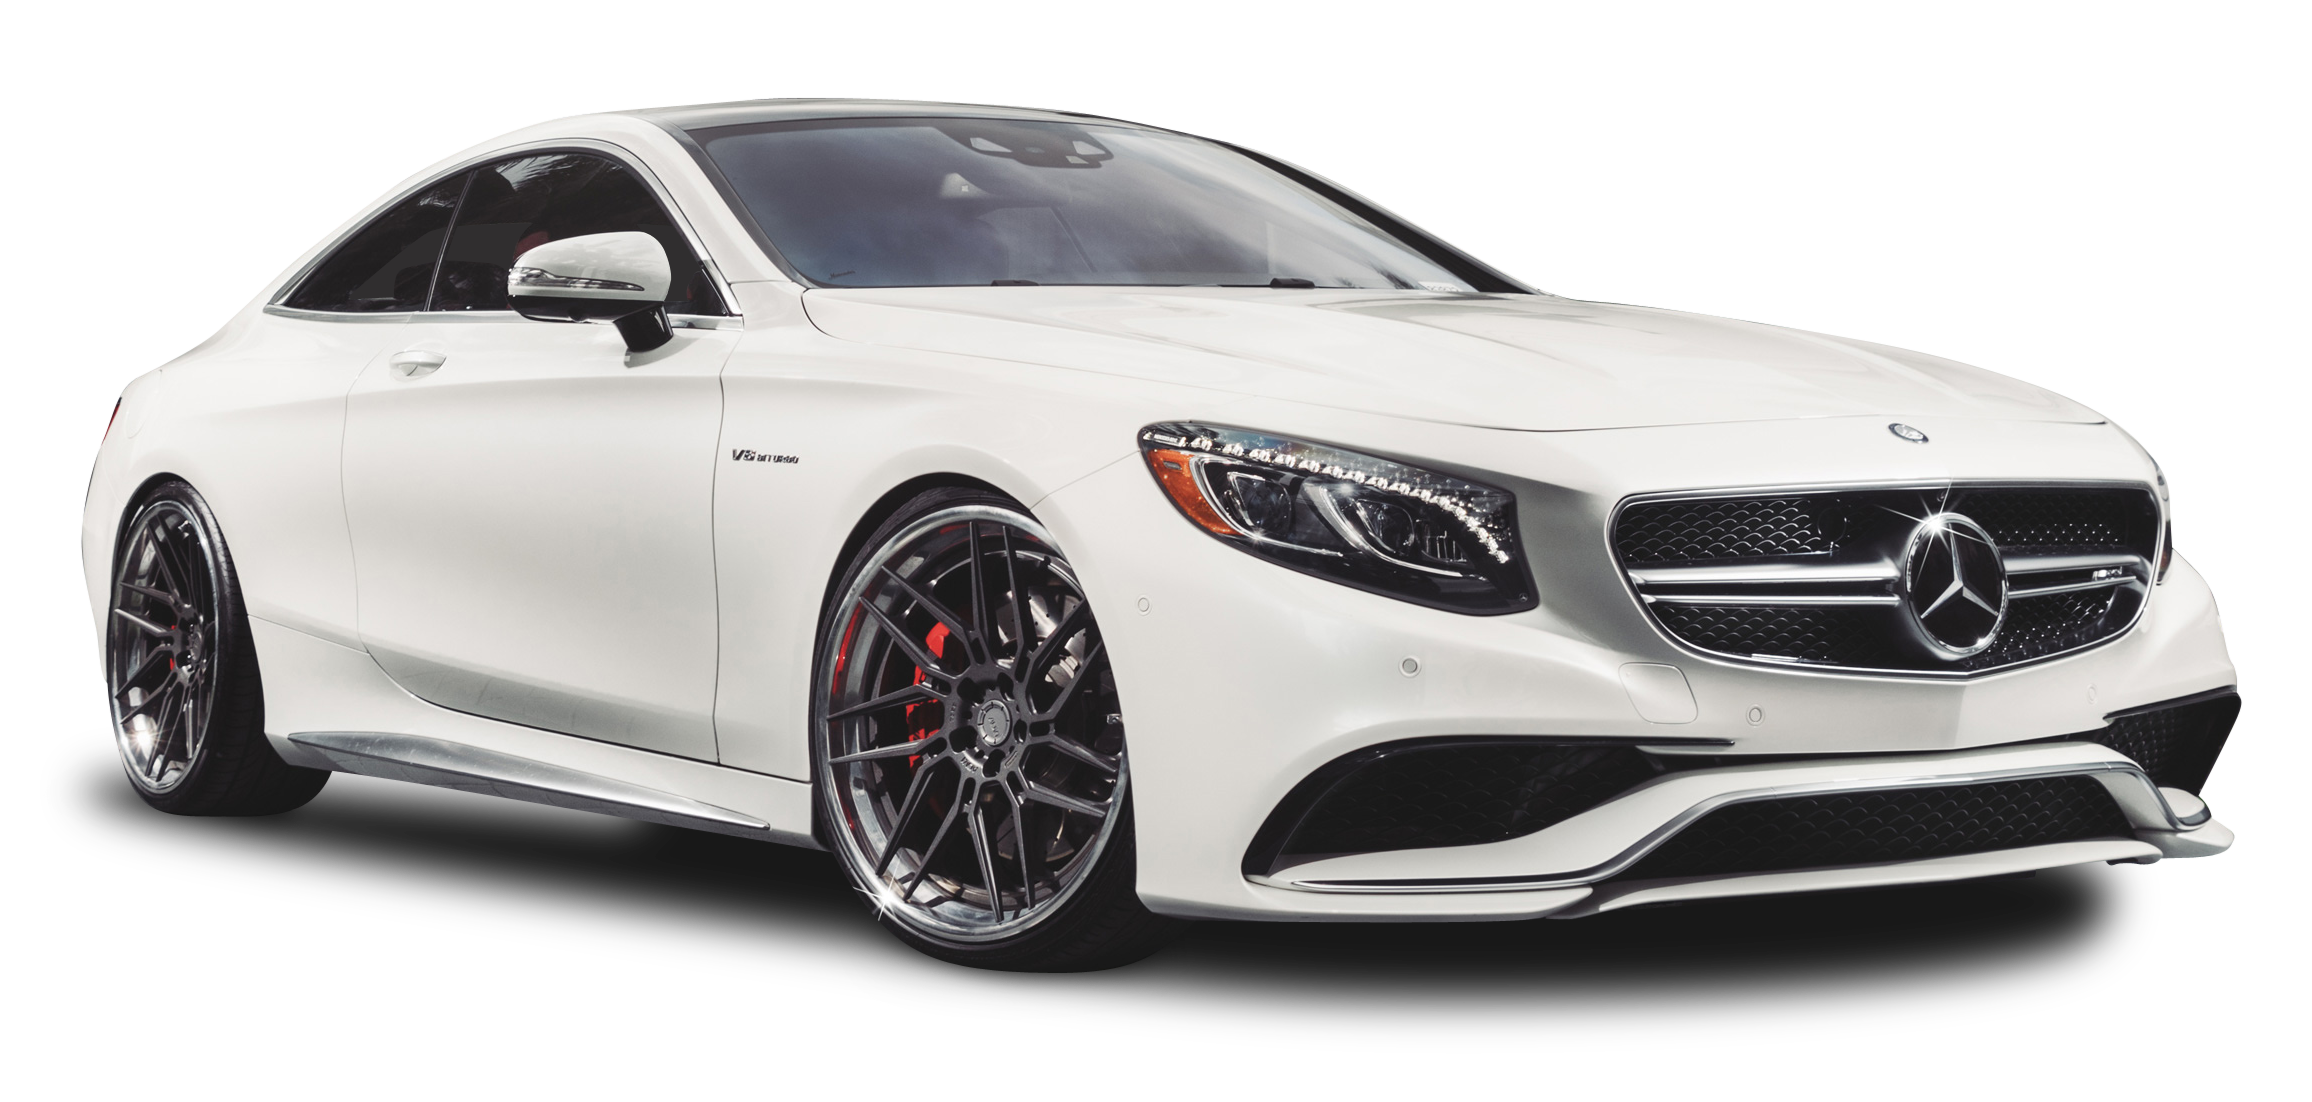 White Mercedes Benz S63 AMG Car PNG Image PurePNG